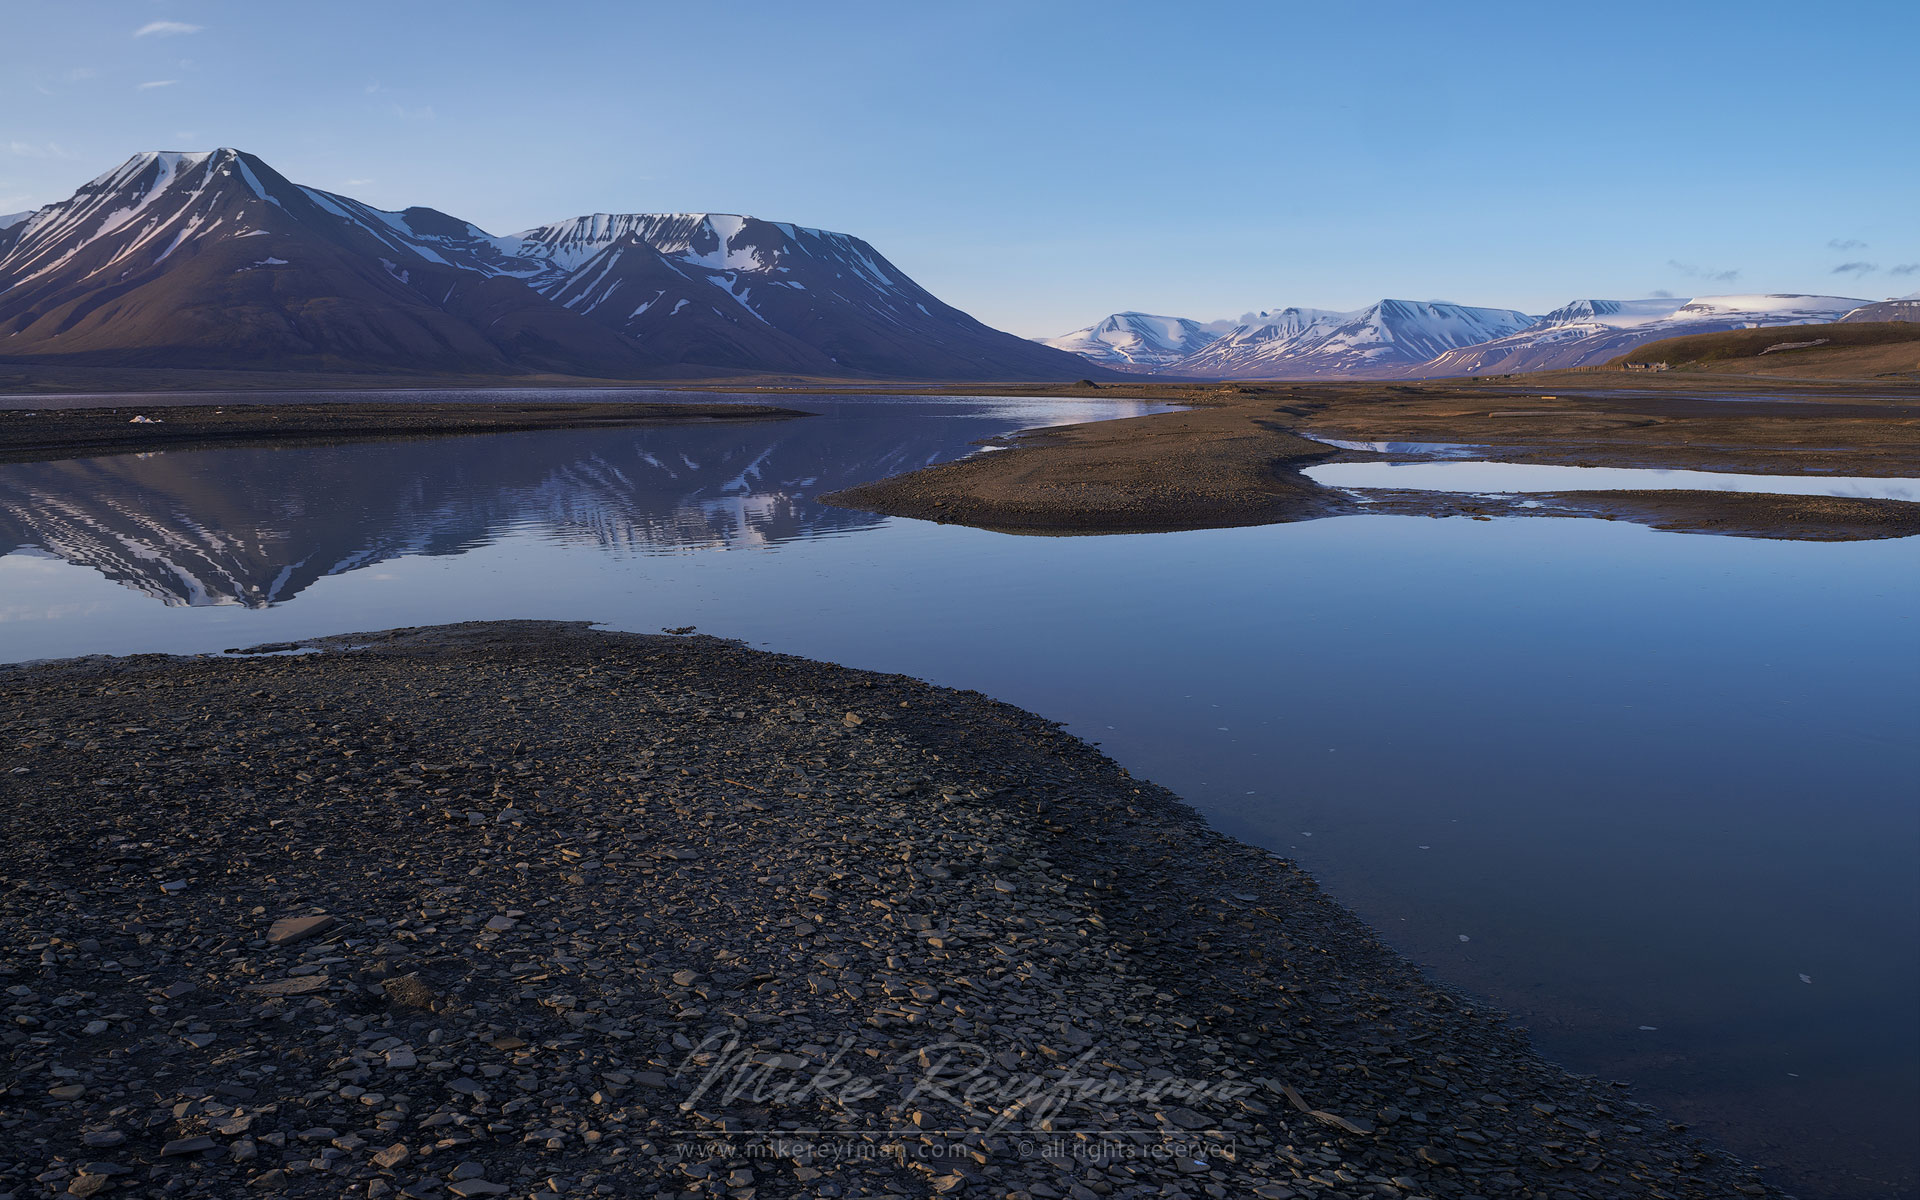 Adventfjorden (Advent Bay) near Longyearbyen. Adventfjorden, Spitsbergen, Svalbard, Norway. - Arctic-Landscape-Svalbard-Spitsbergen-Norway - Mike Reyfman Photography